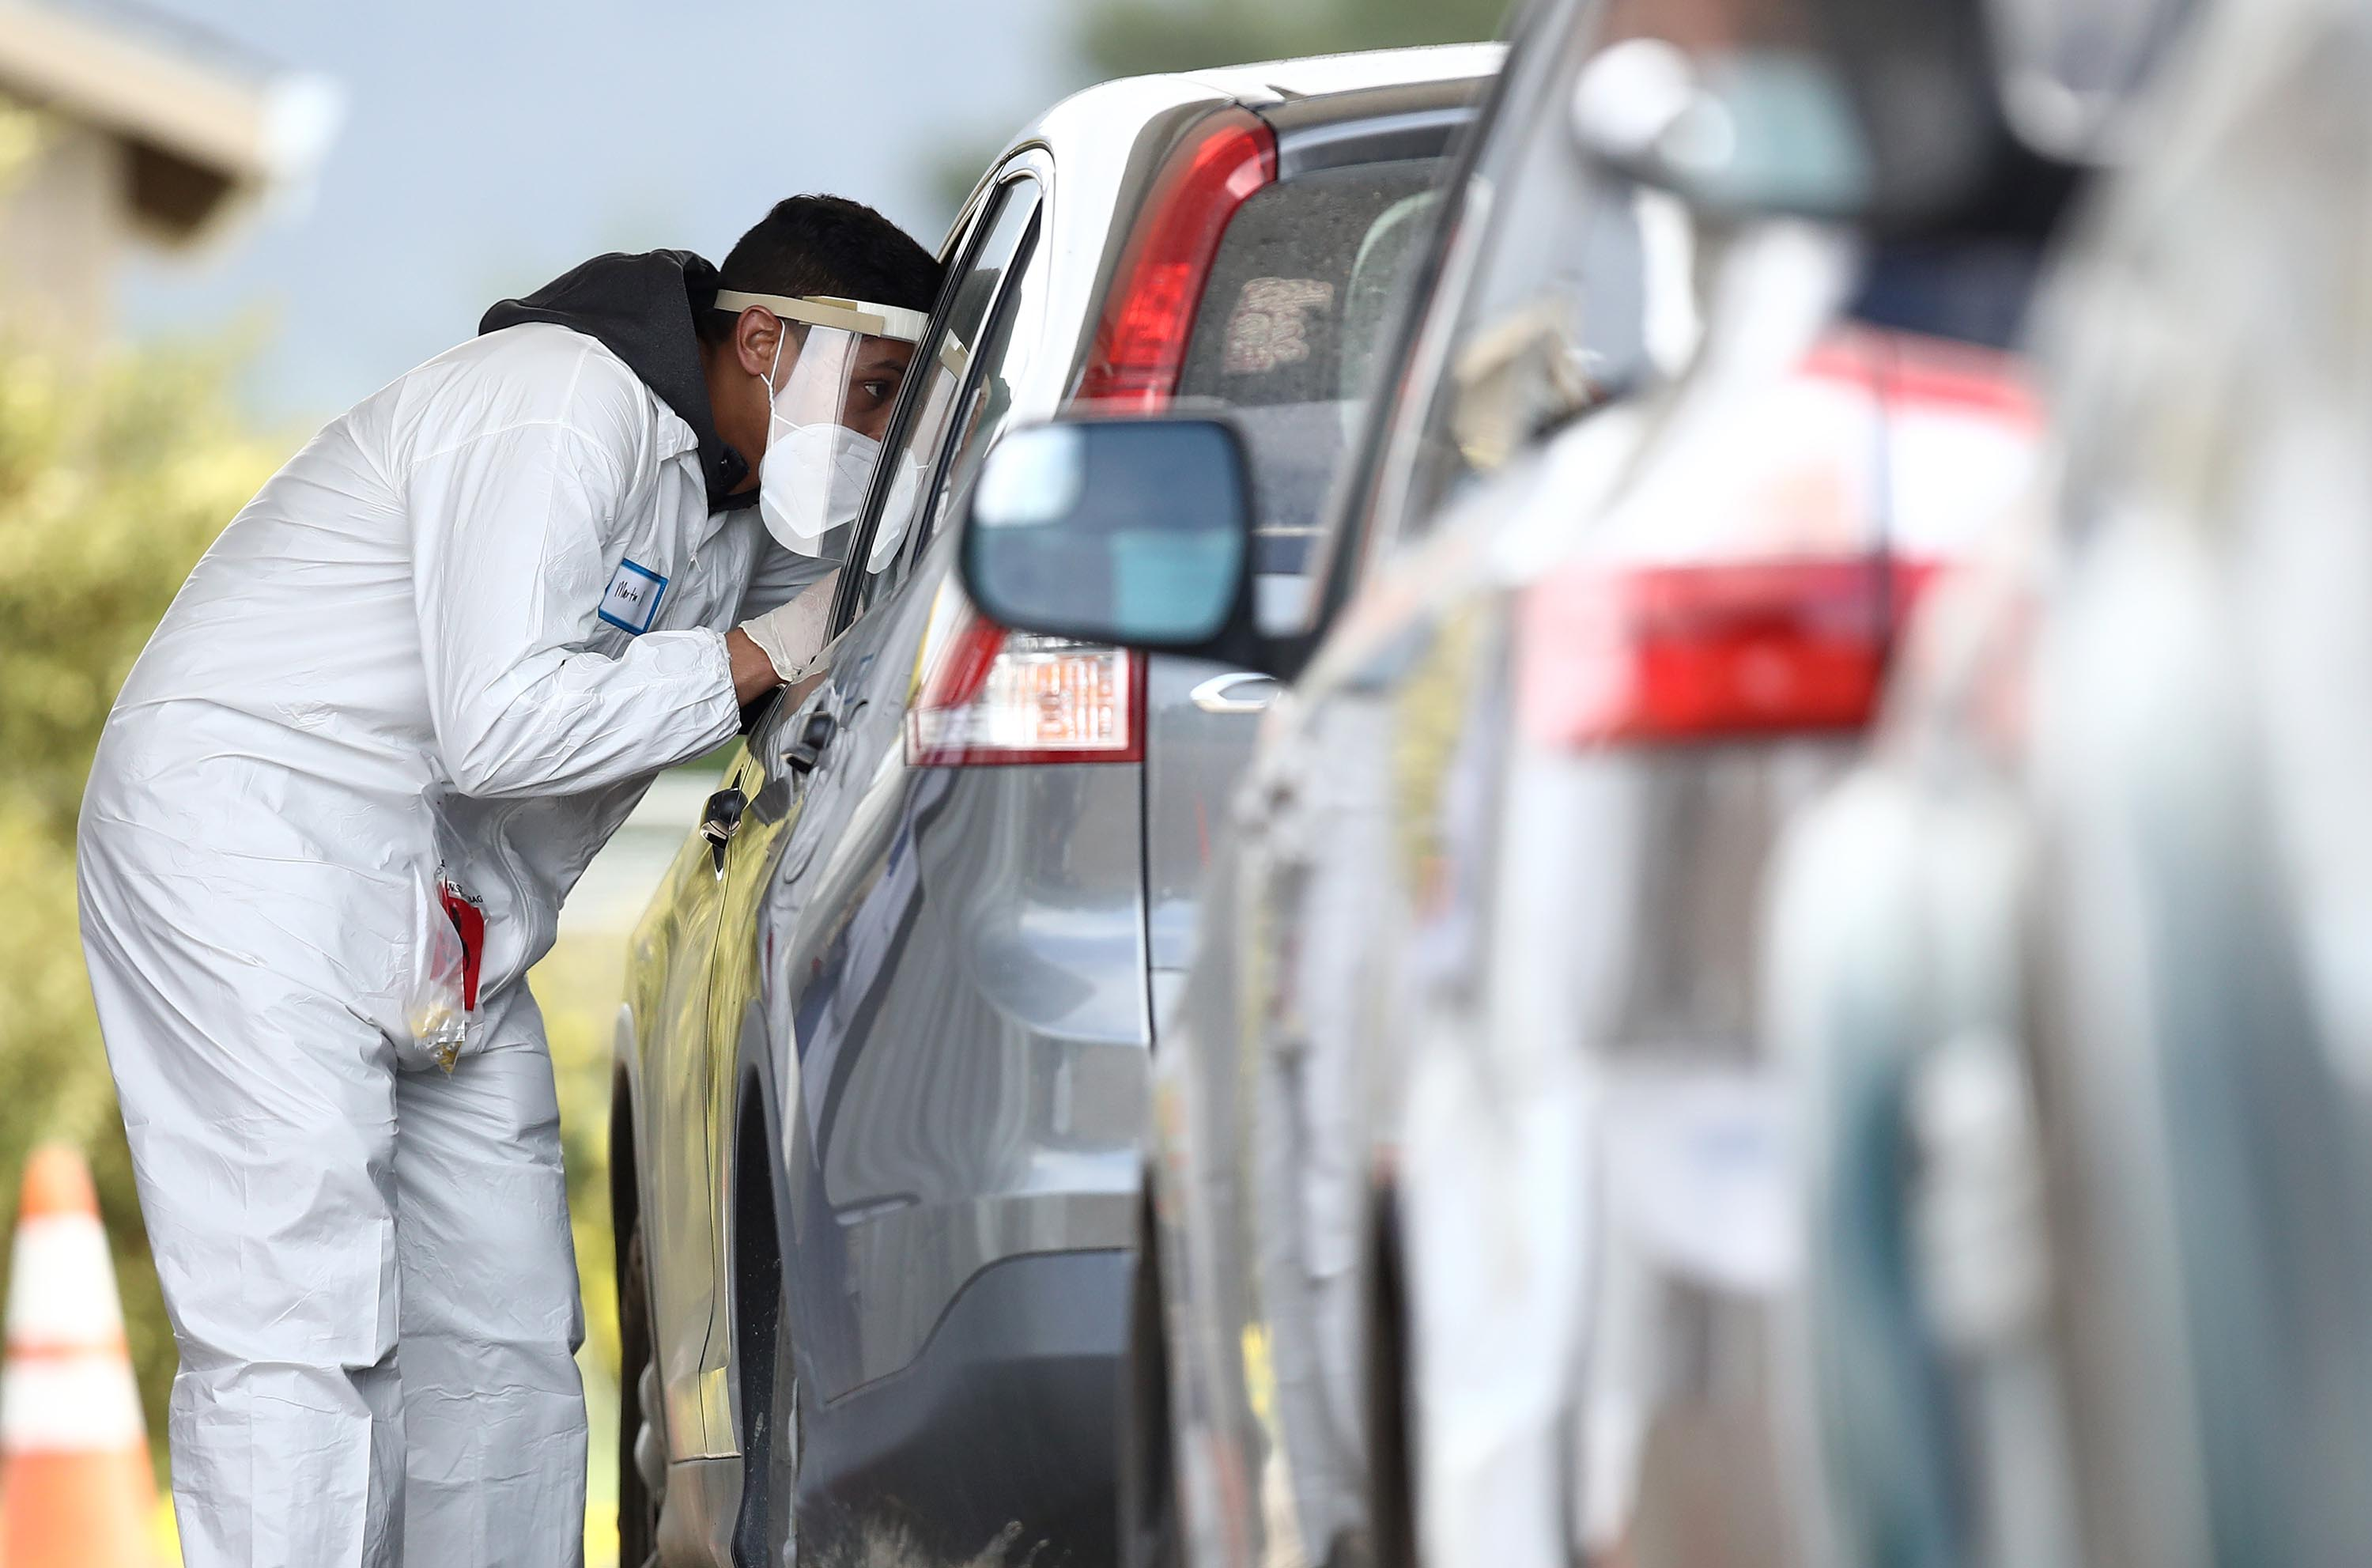 A medical professional administers a coronavirus test at a drive thru testing location in Bolinas, California, on April 20.